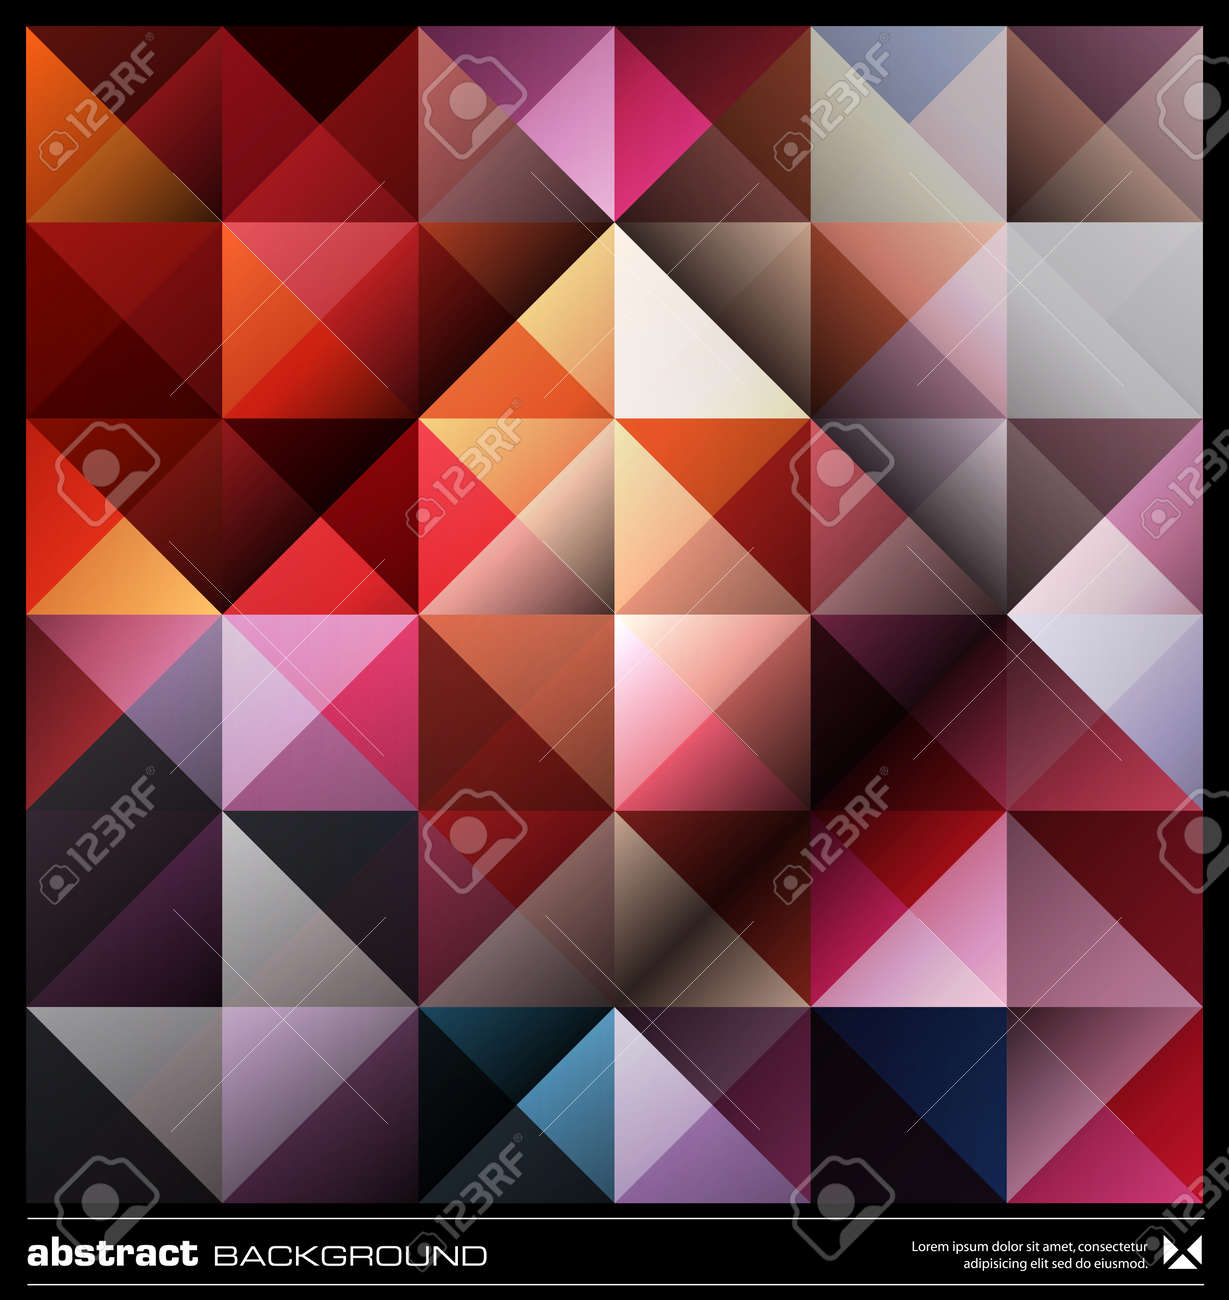 Triangles  background design. Colorful pattern. Abstract modern mosaic seamless pattern. Retro poster, card,flyer or cover template. Stock Vector - 19579182